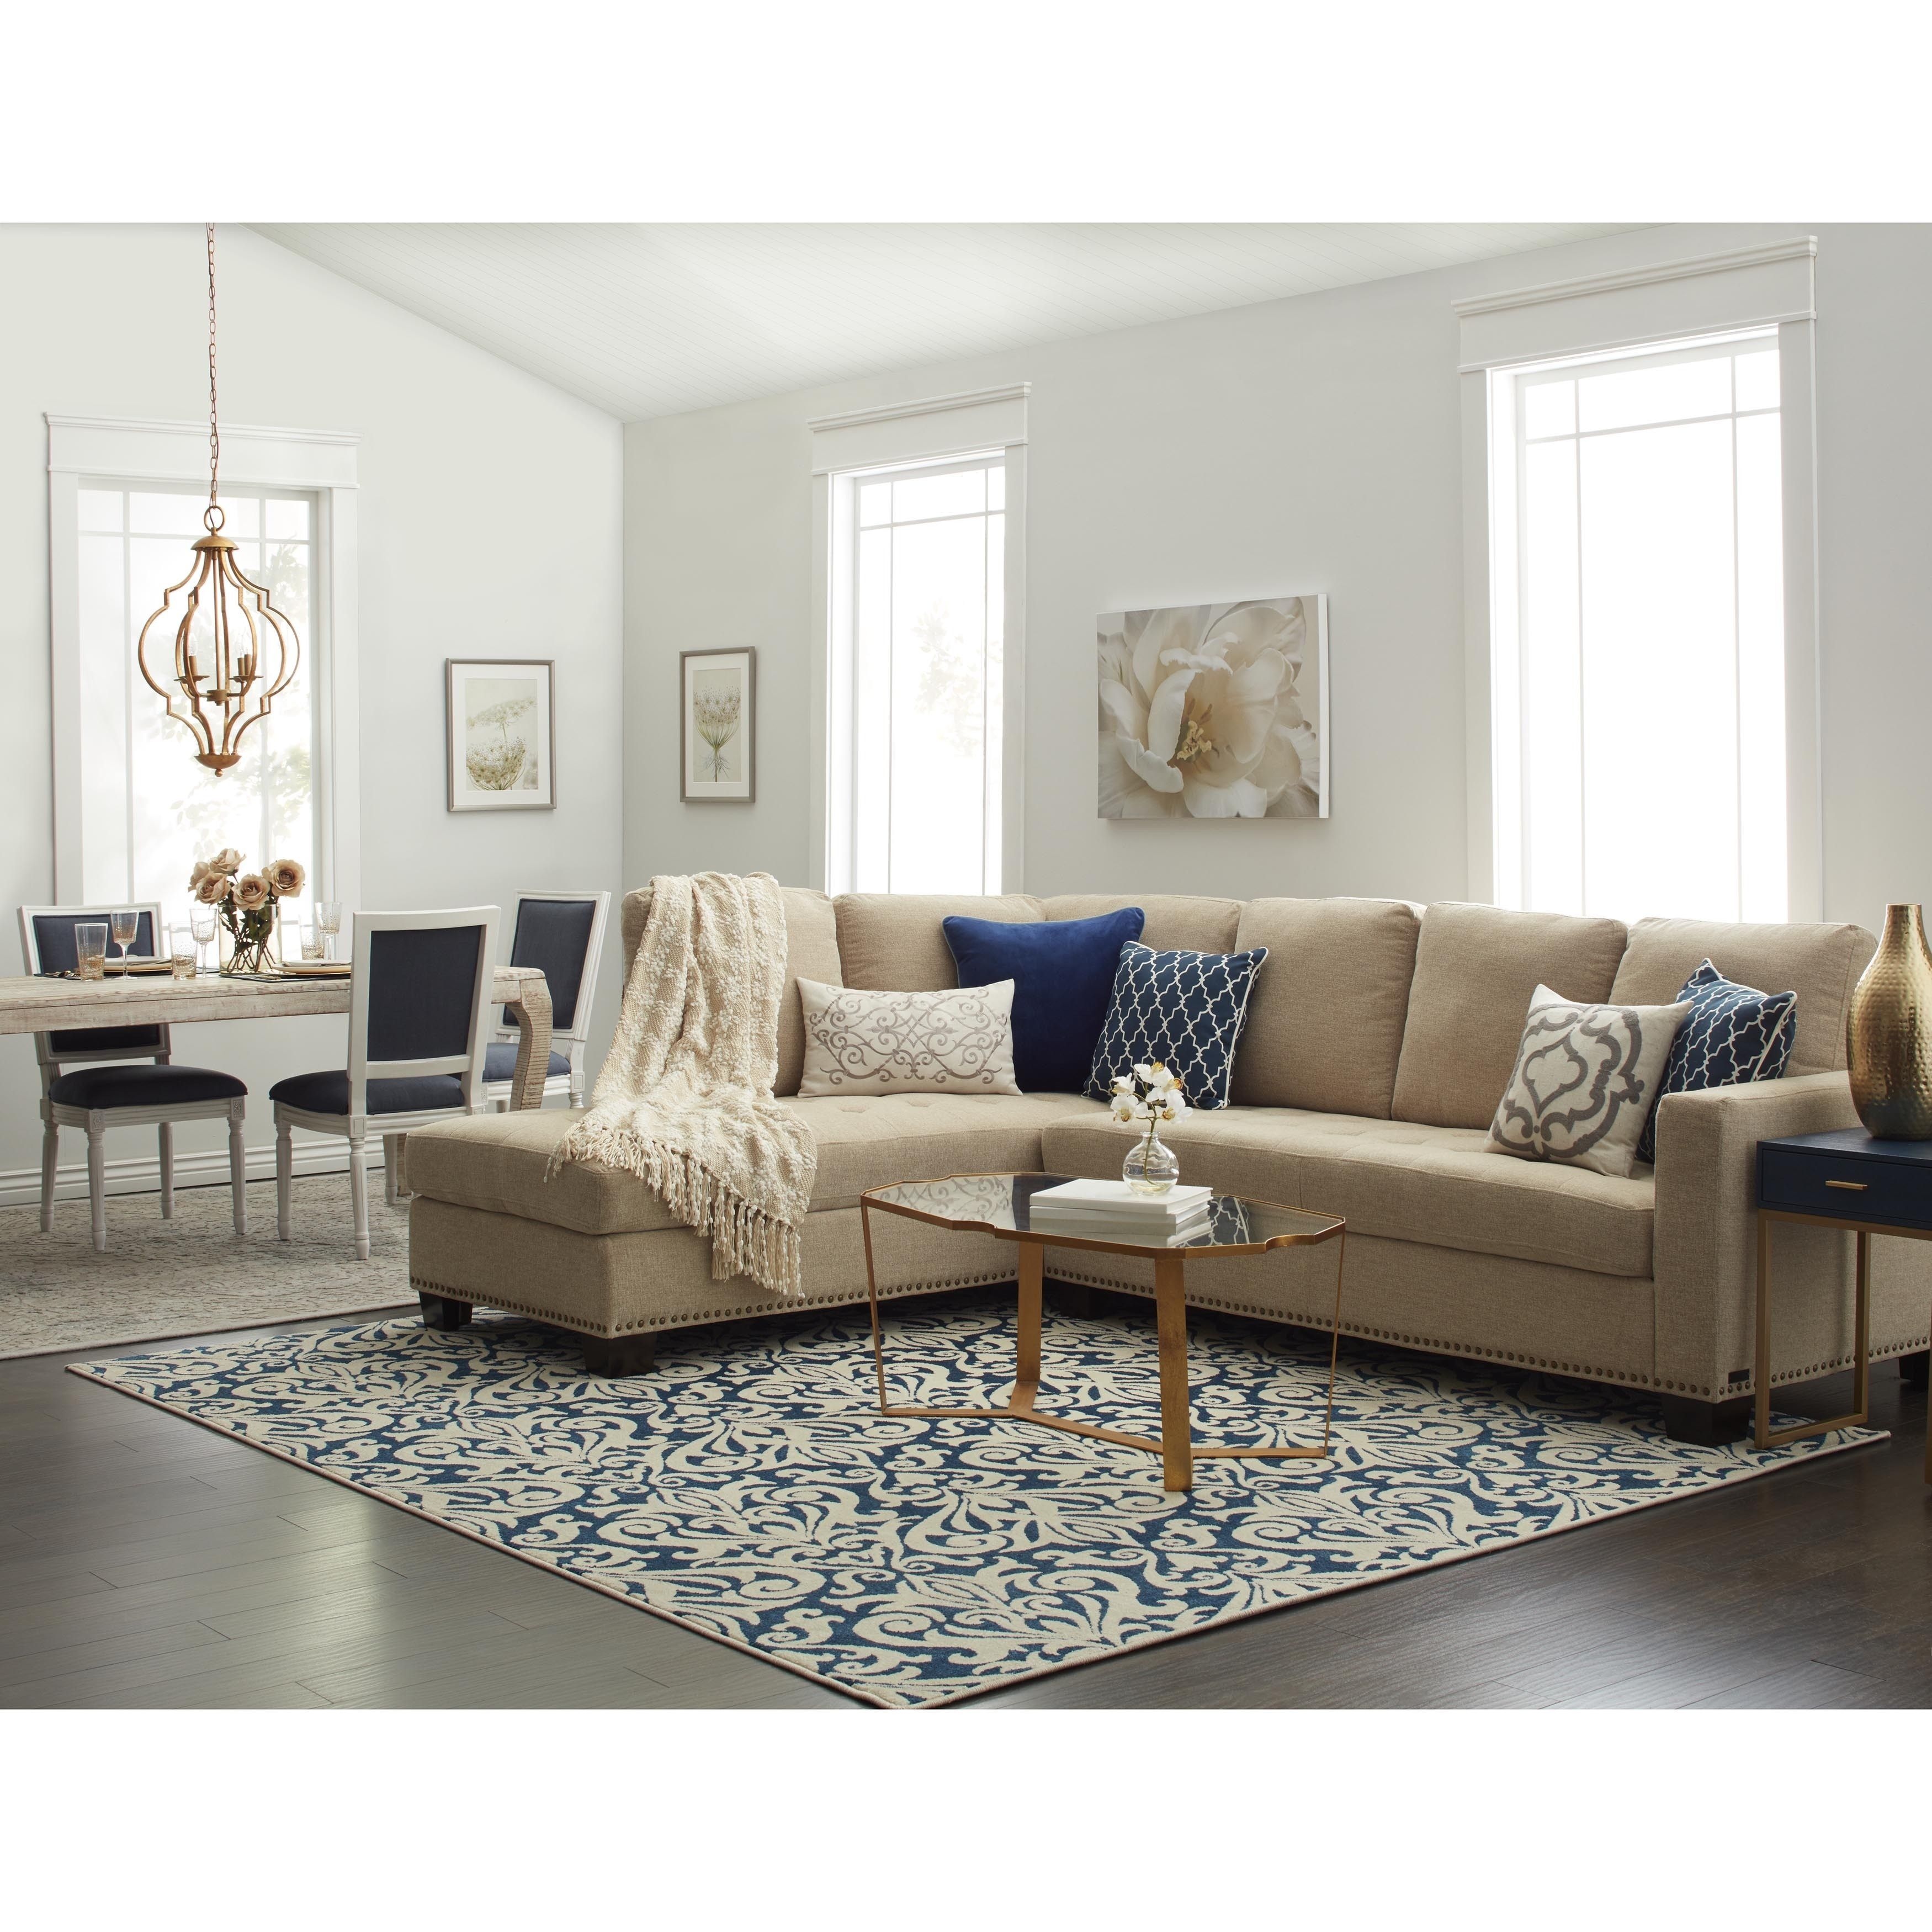 leather or fabric sofa for family room chelsea sofas greenwich beige tan bonded linen microfiber